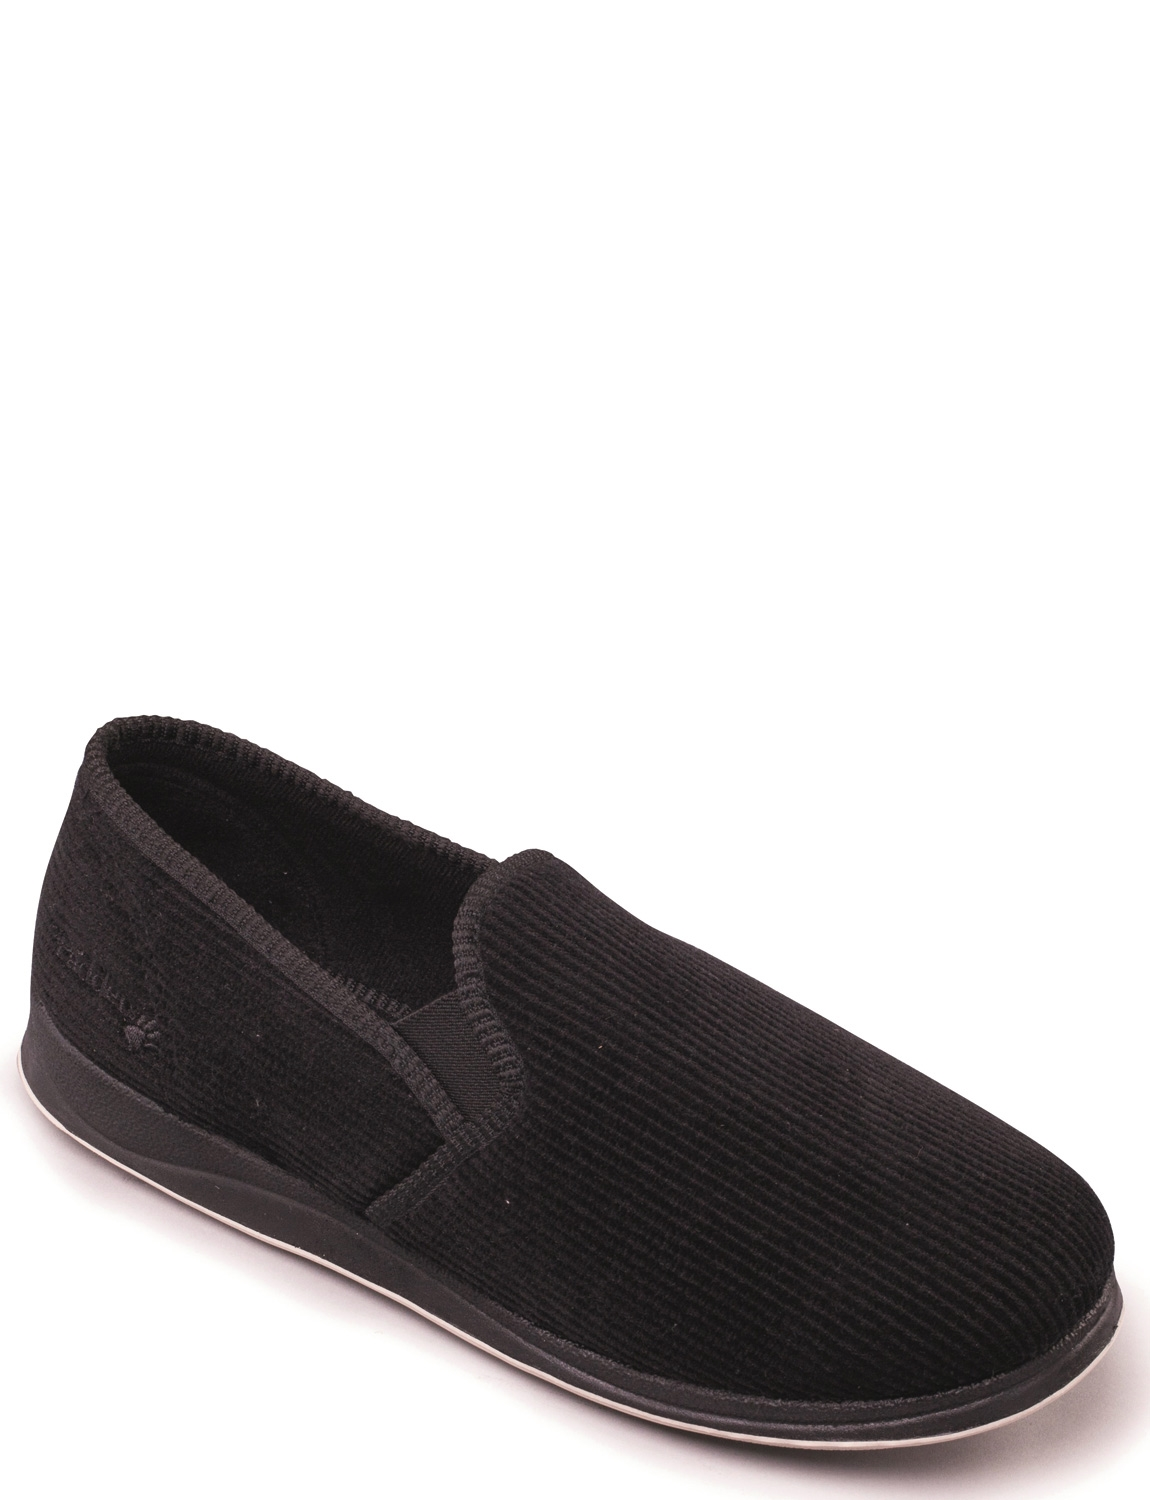 bb506d0c584a0c Mens Padders G Fit Slippers | Chums